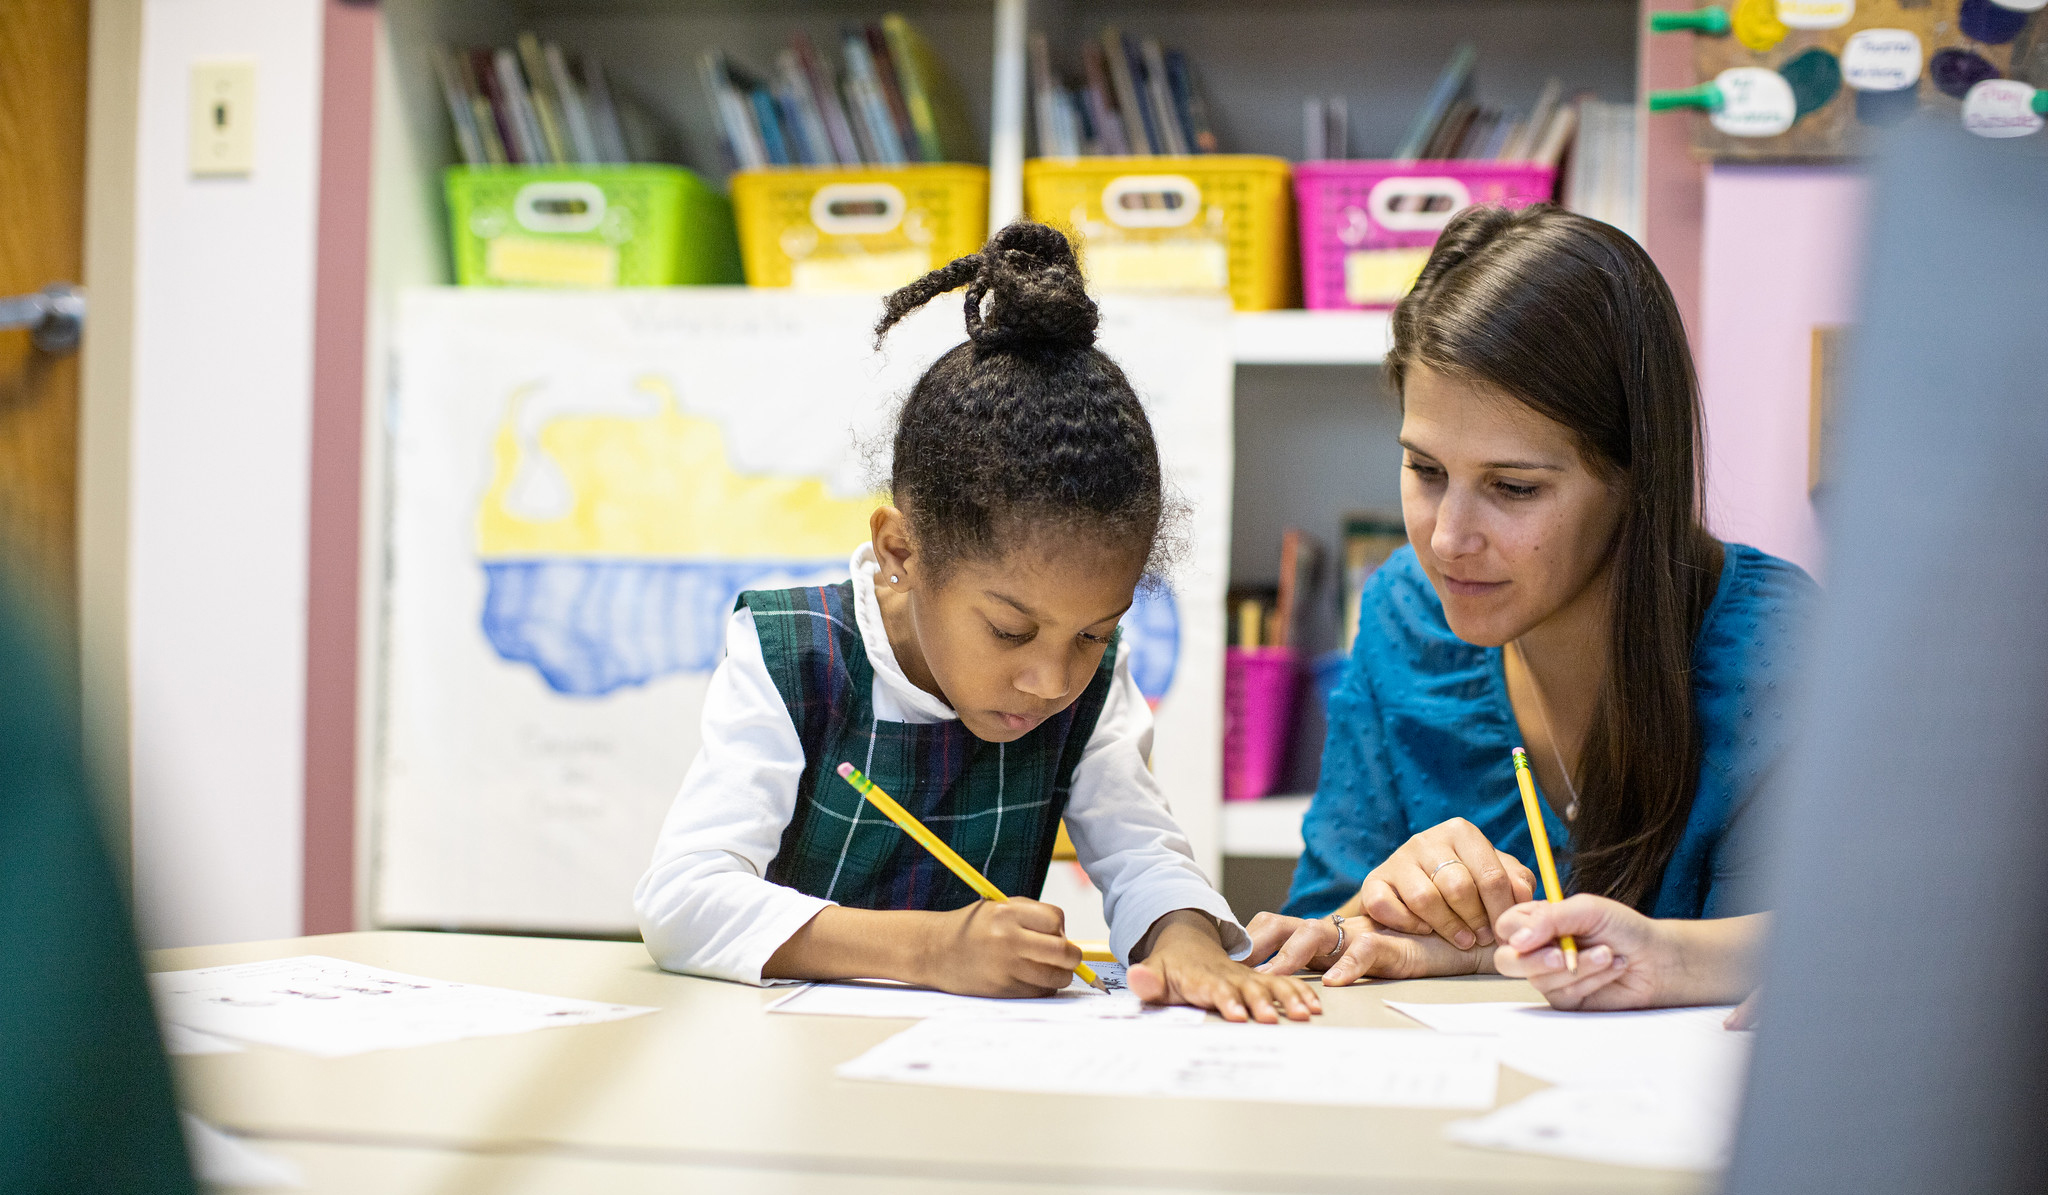 A teacher and student at The Ellis School, an all-girls private school in Pittsburgh, work together in a classroom.